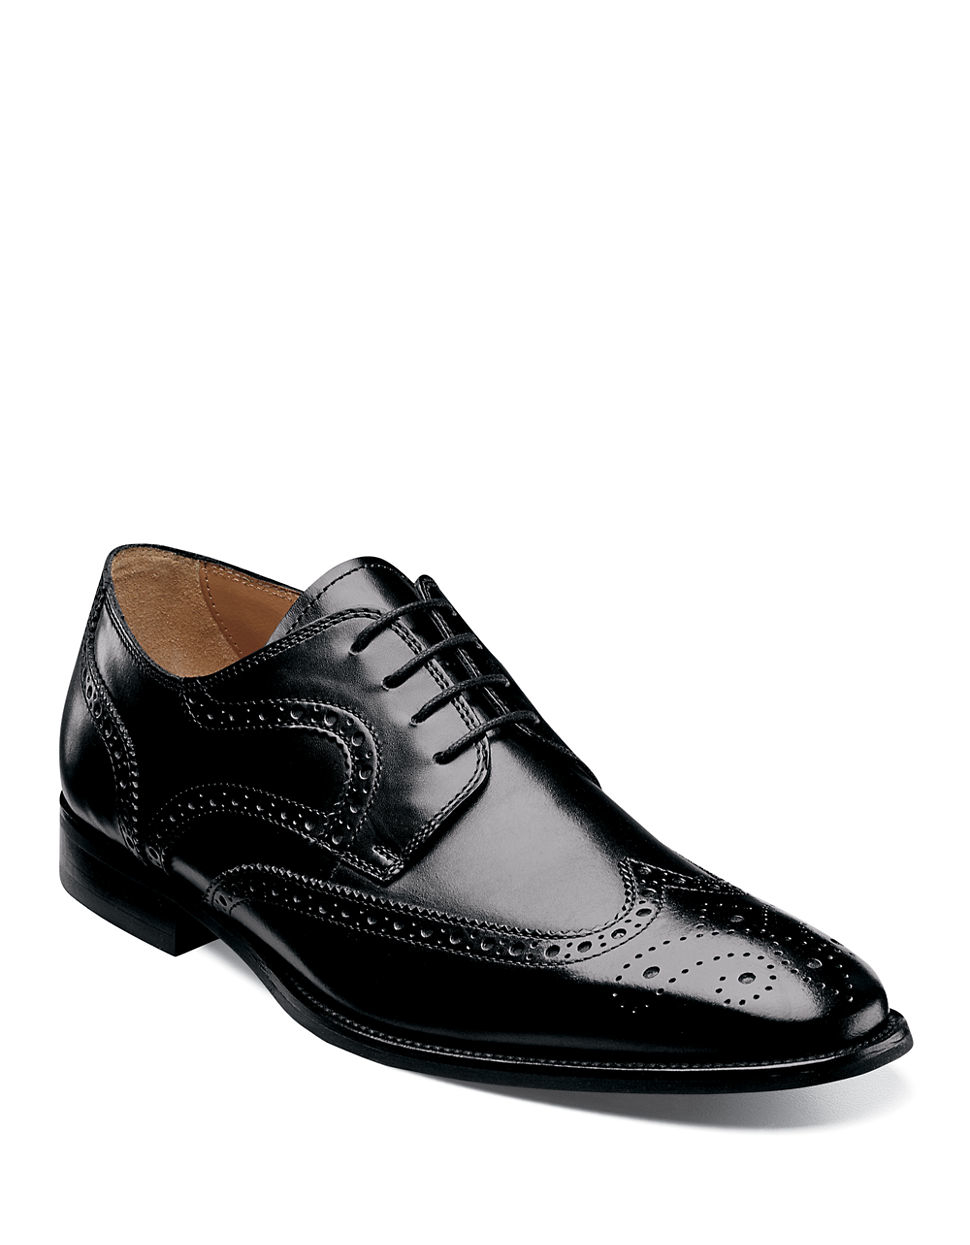 Black And White Wingtip Shoes Uk